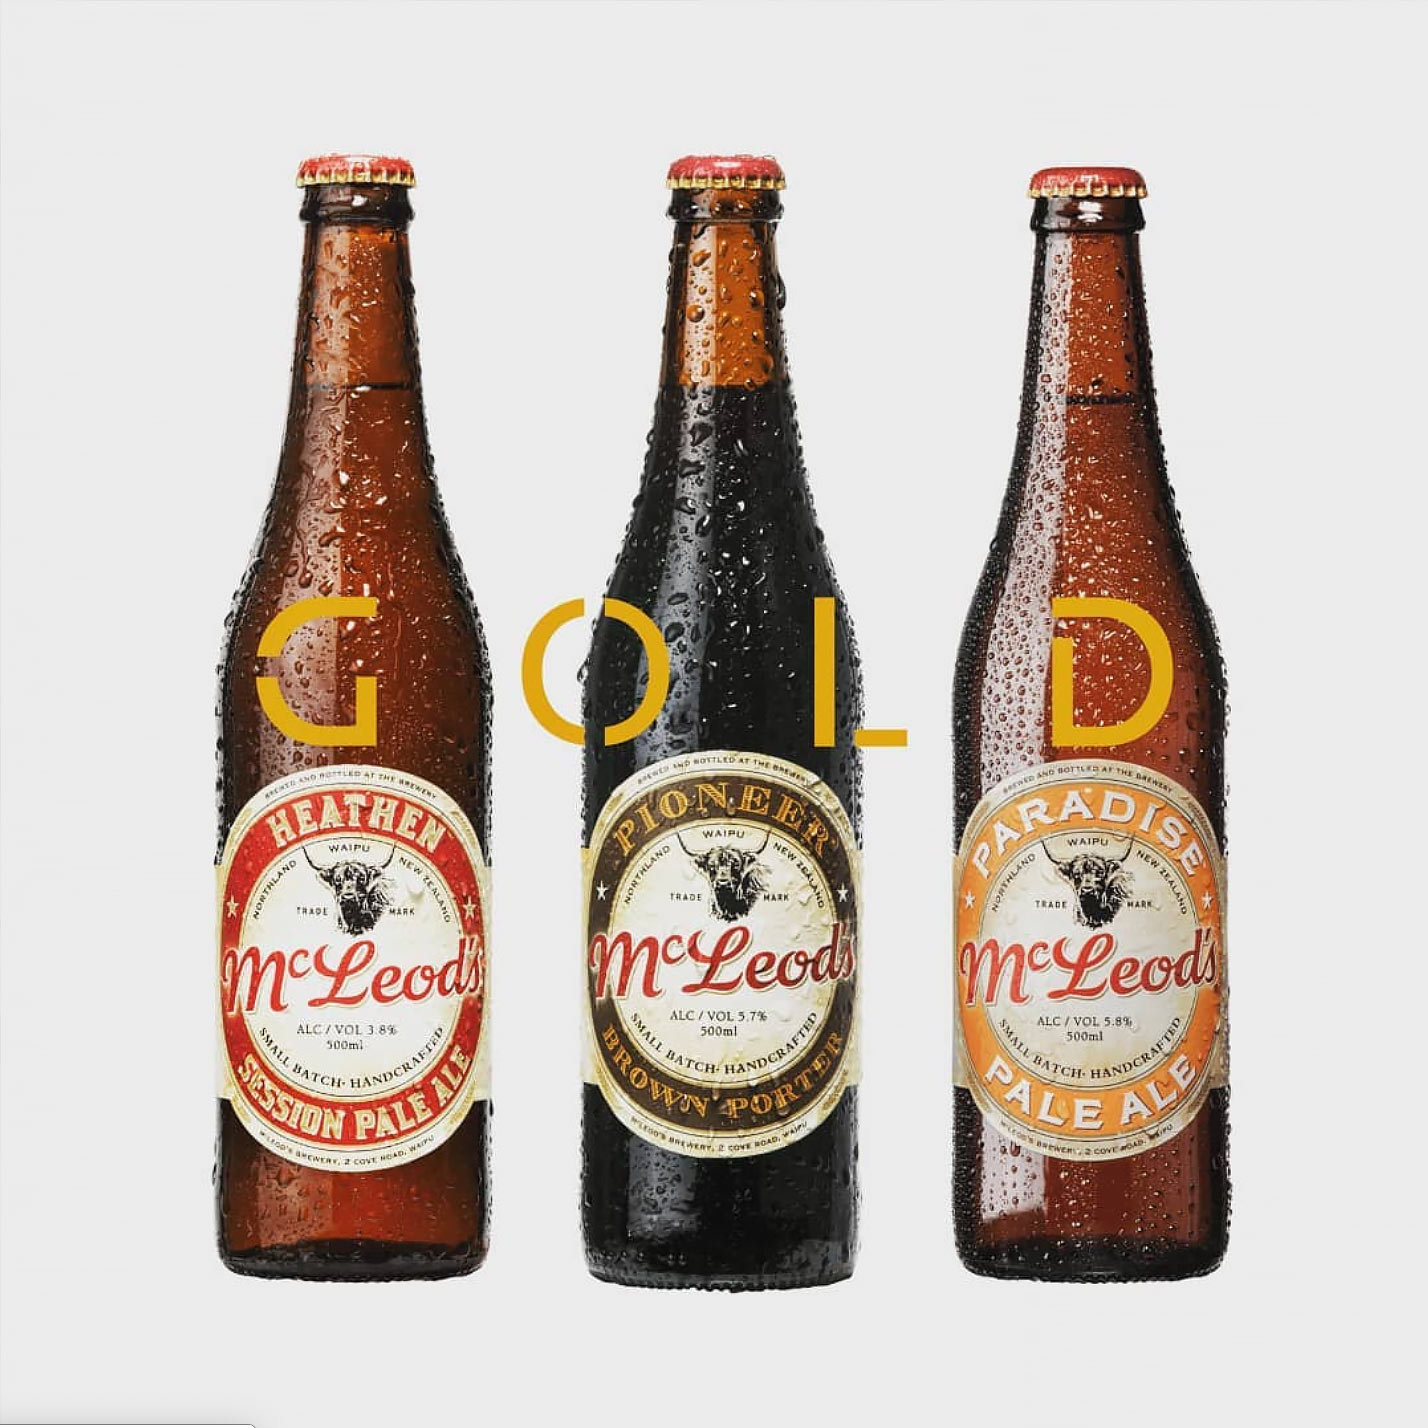 mcleods-beer-photographer-nz-bottle